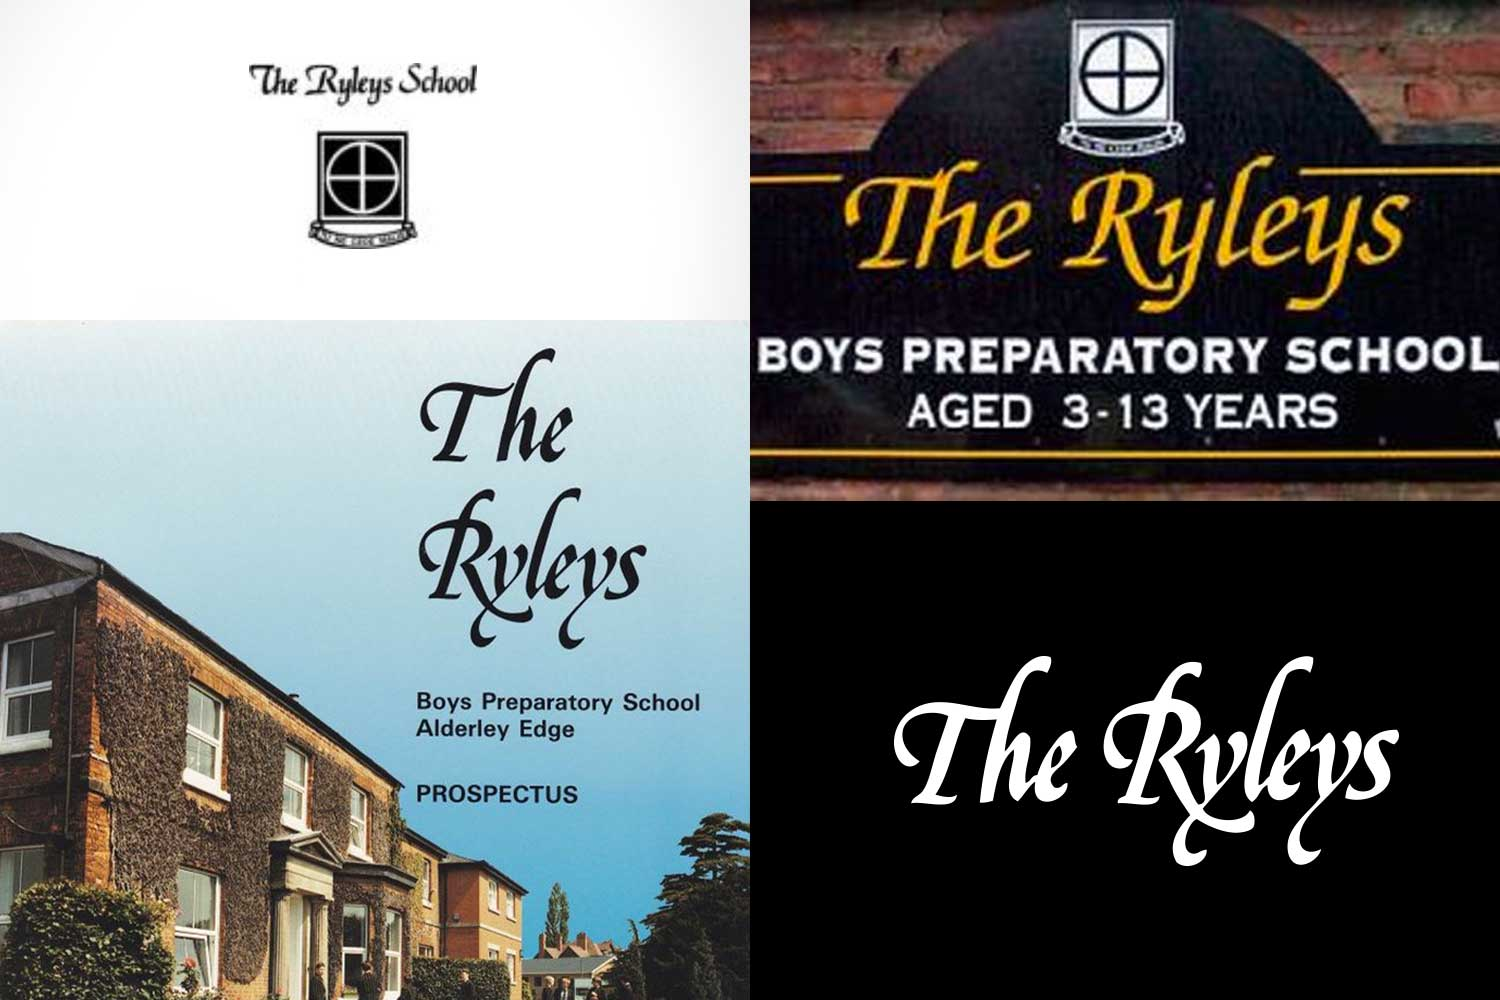 The brand required an update and to incorporate the move to being a mixed school